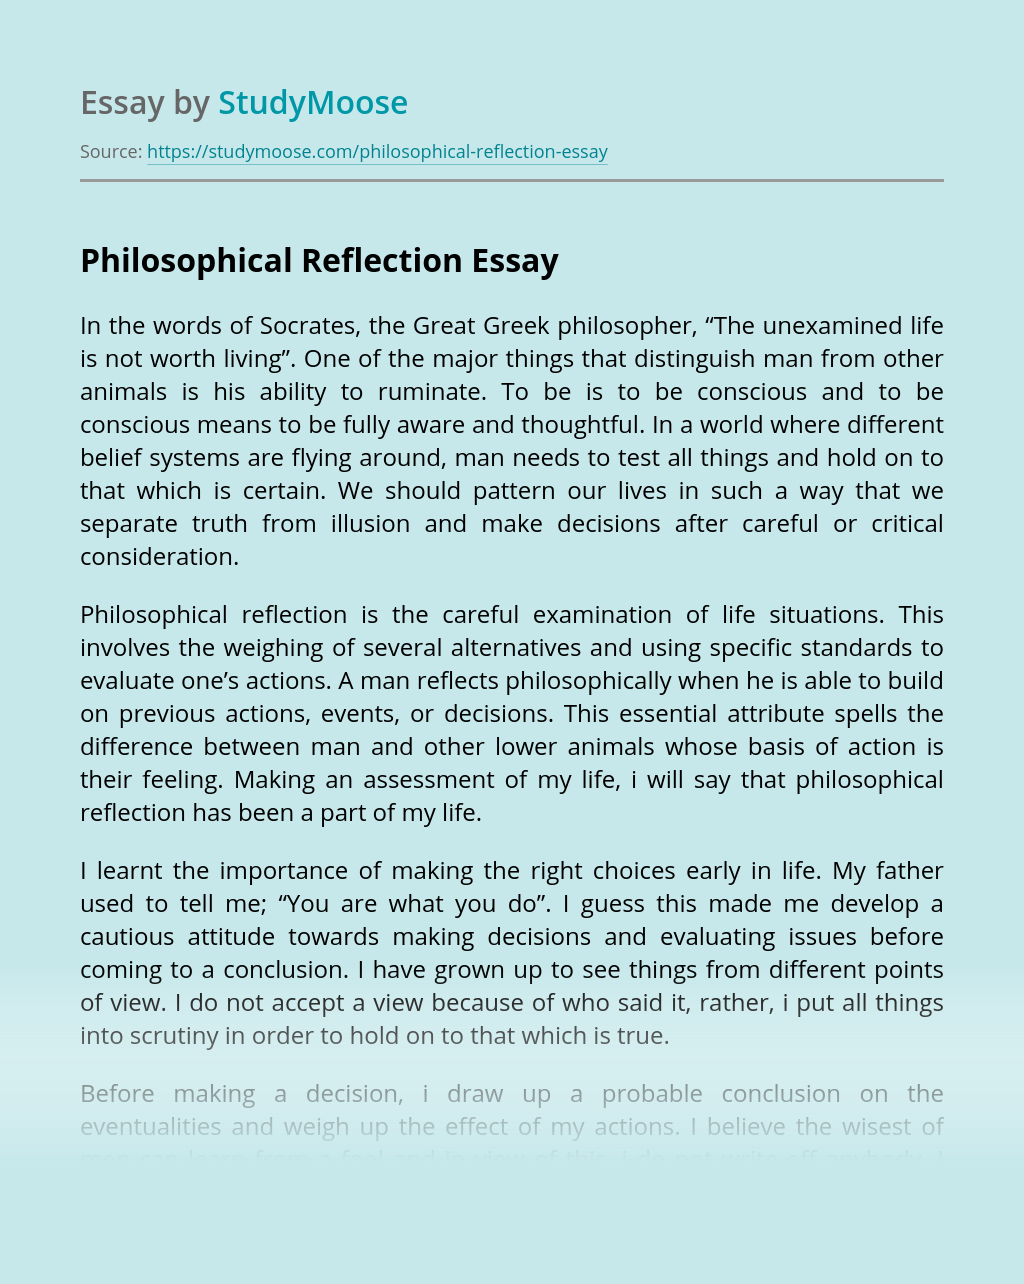 Philosophical Reflection